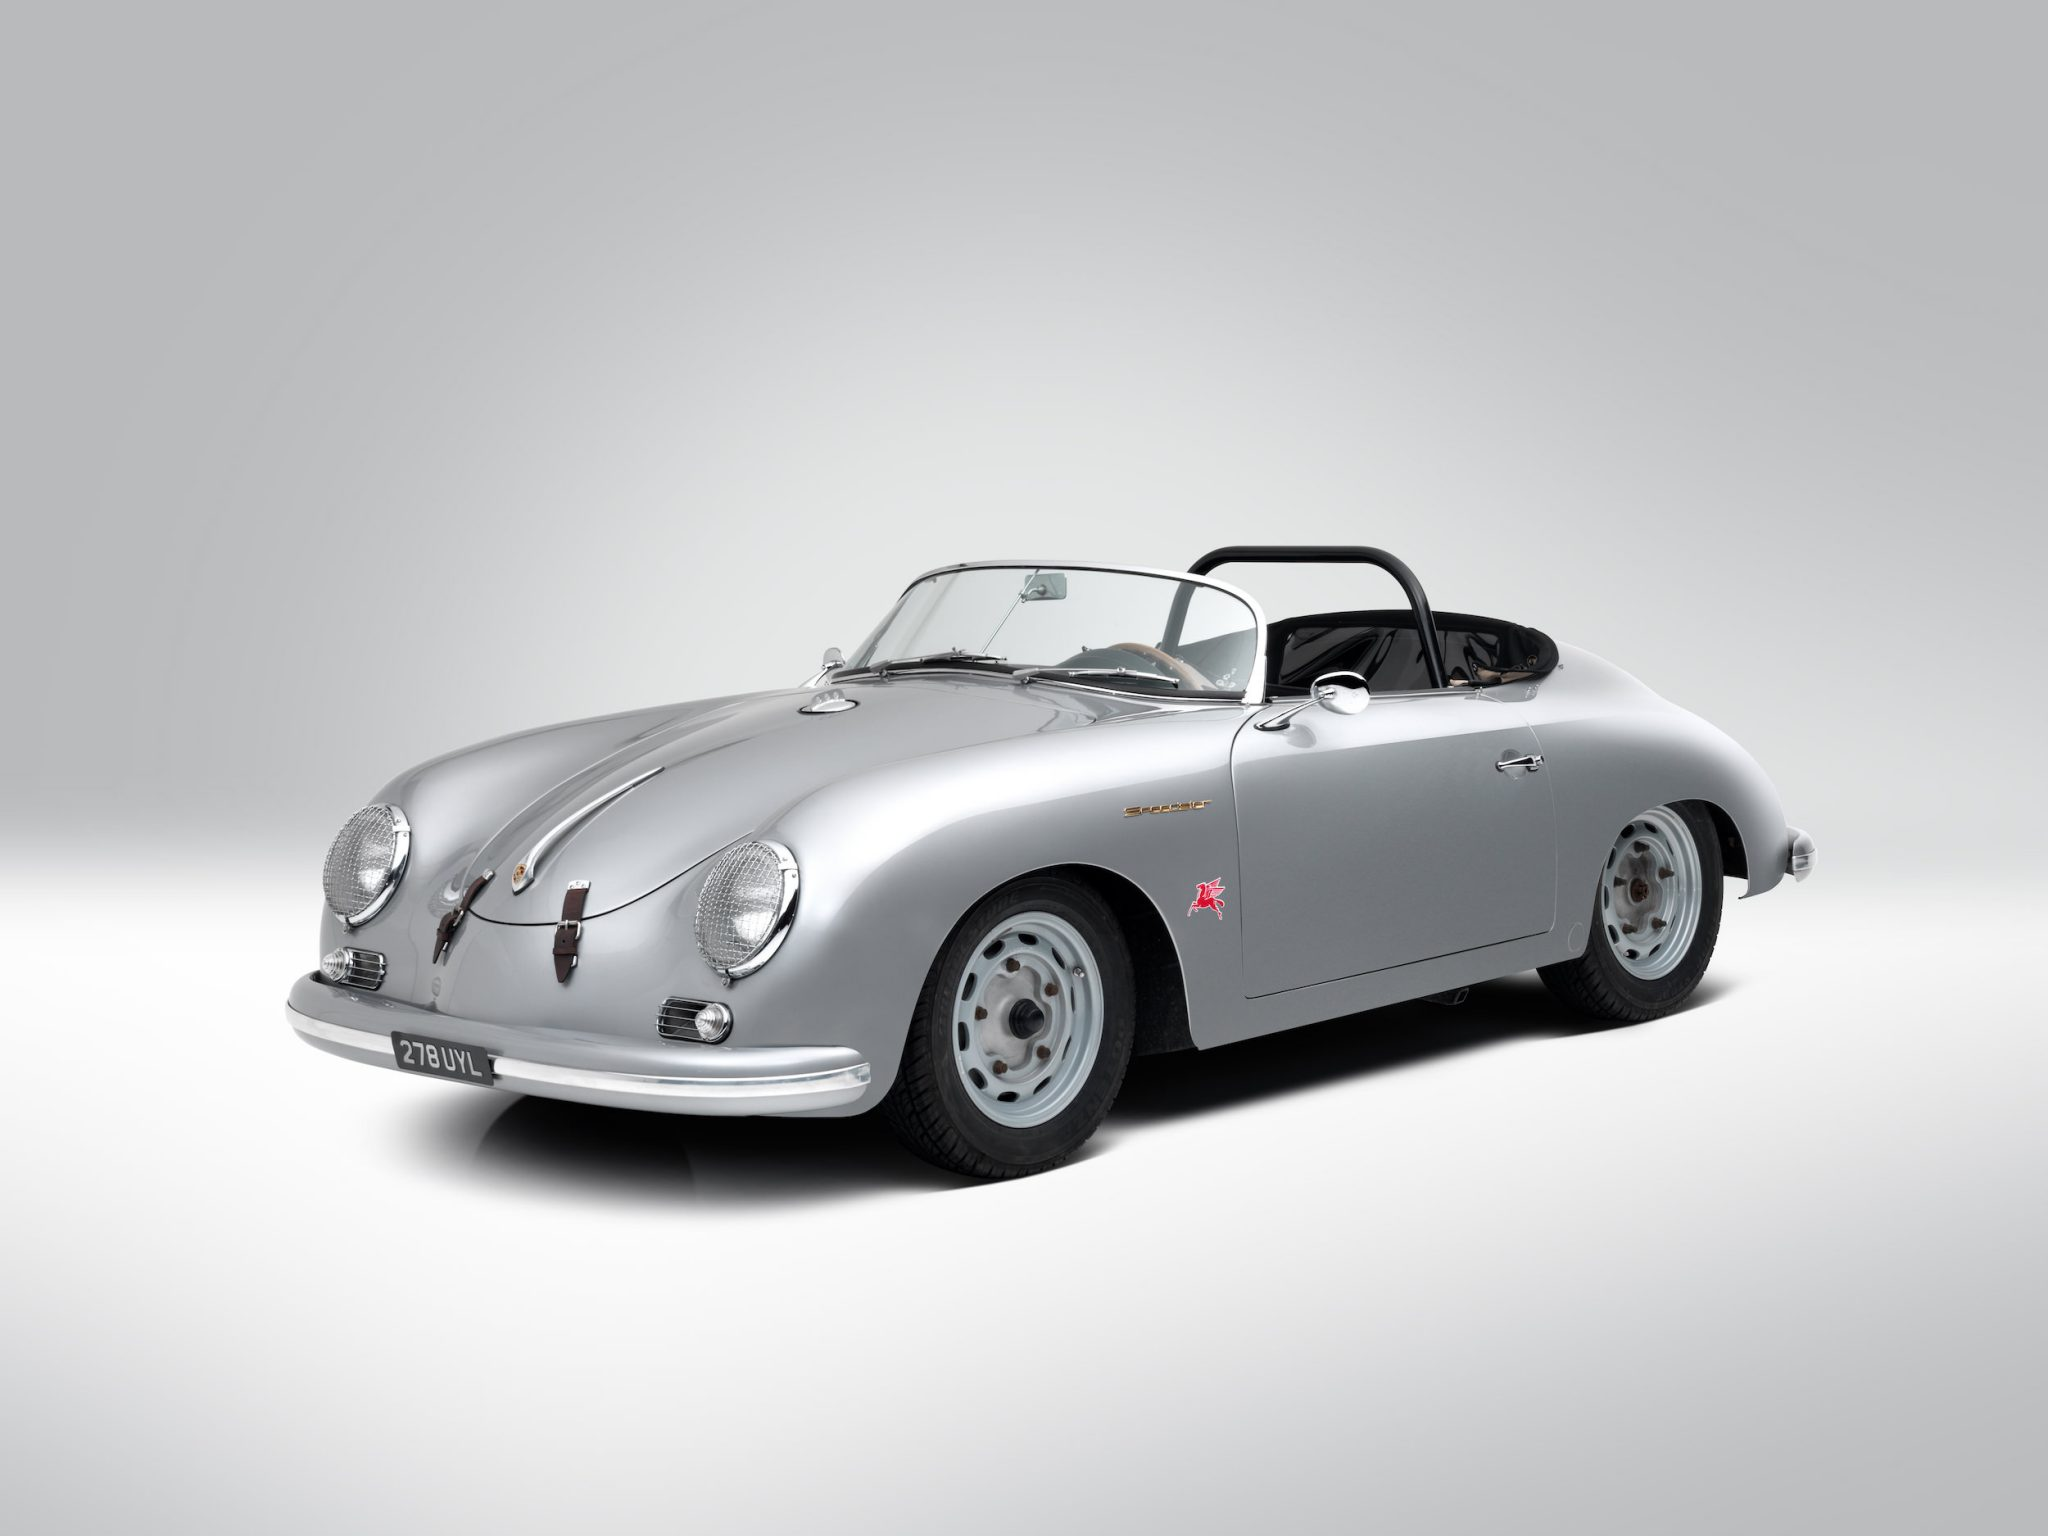 1958 Porsche 356 A 1600 Super Speedster